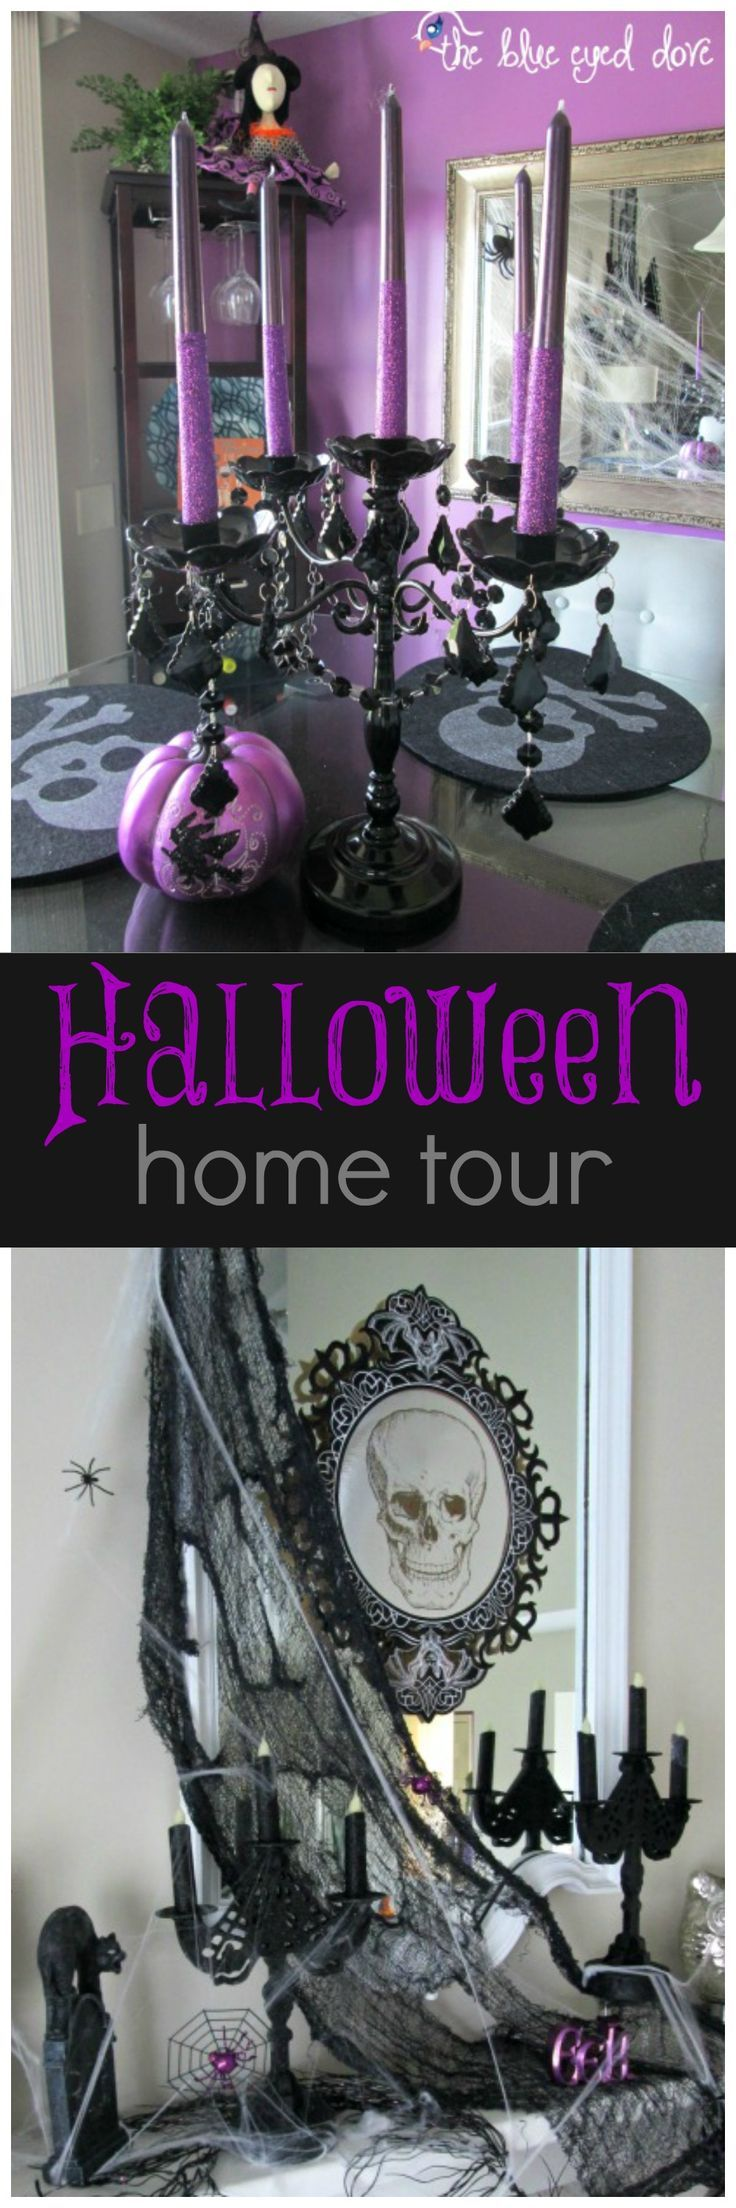 Best 25+ Indoor halloween decorations ideas on Pinterest | DIY Halloween  decorations indoor, Halloween decorations inside and Diy halloween bats